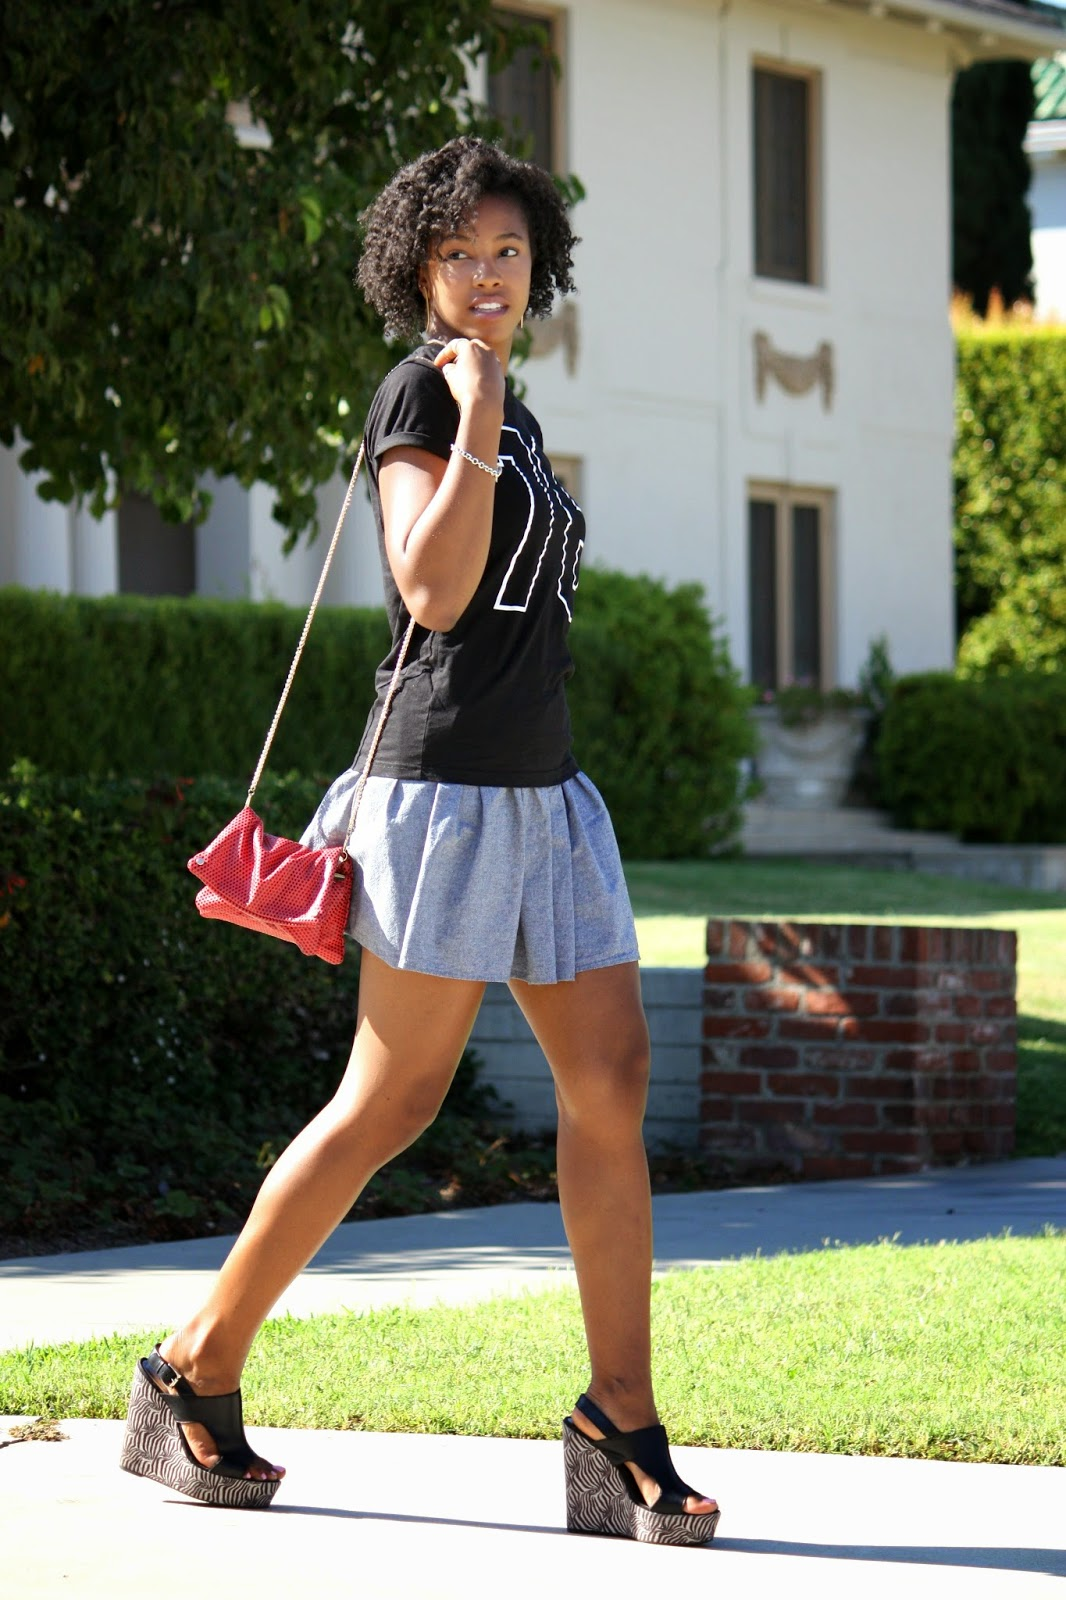 Wearing HM graphic t shirt American Apparel skirt HM bag Tiffany Co bracelet and Carlos wedges